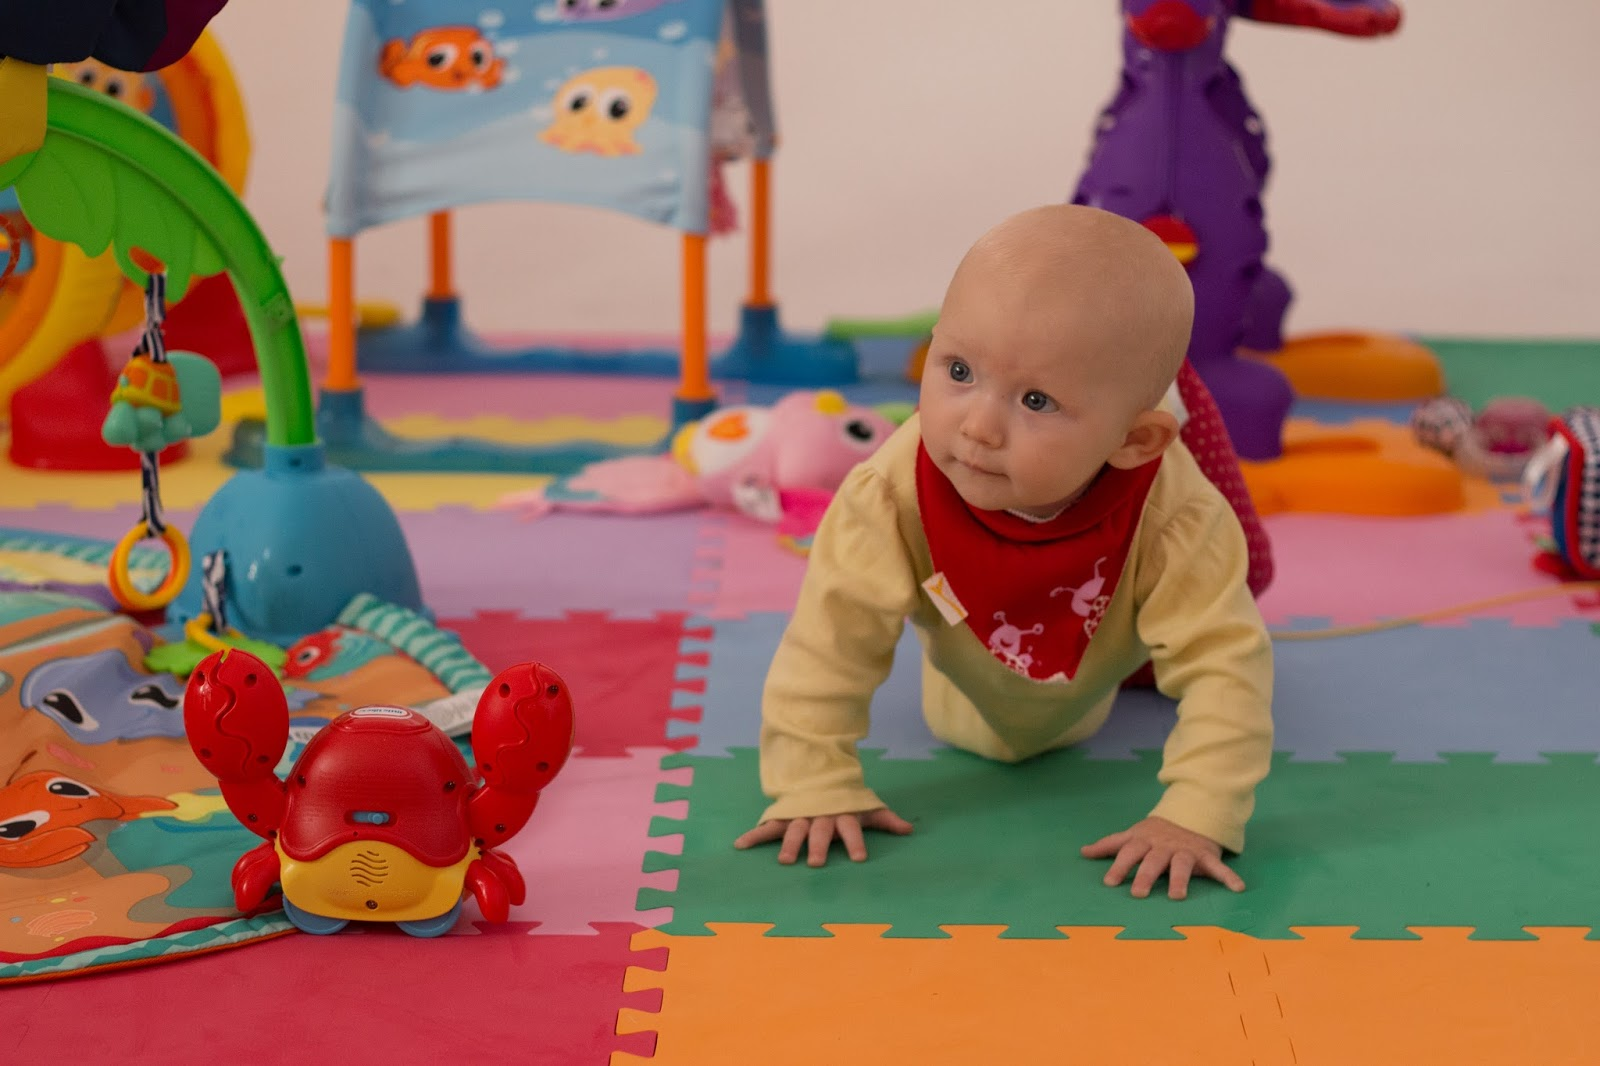 A baby crawling surrounded by Little Tikes toys on brightly coloured mats